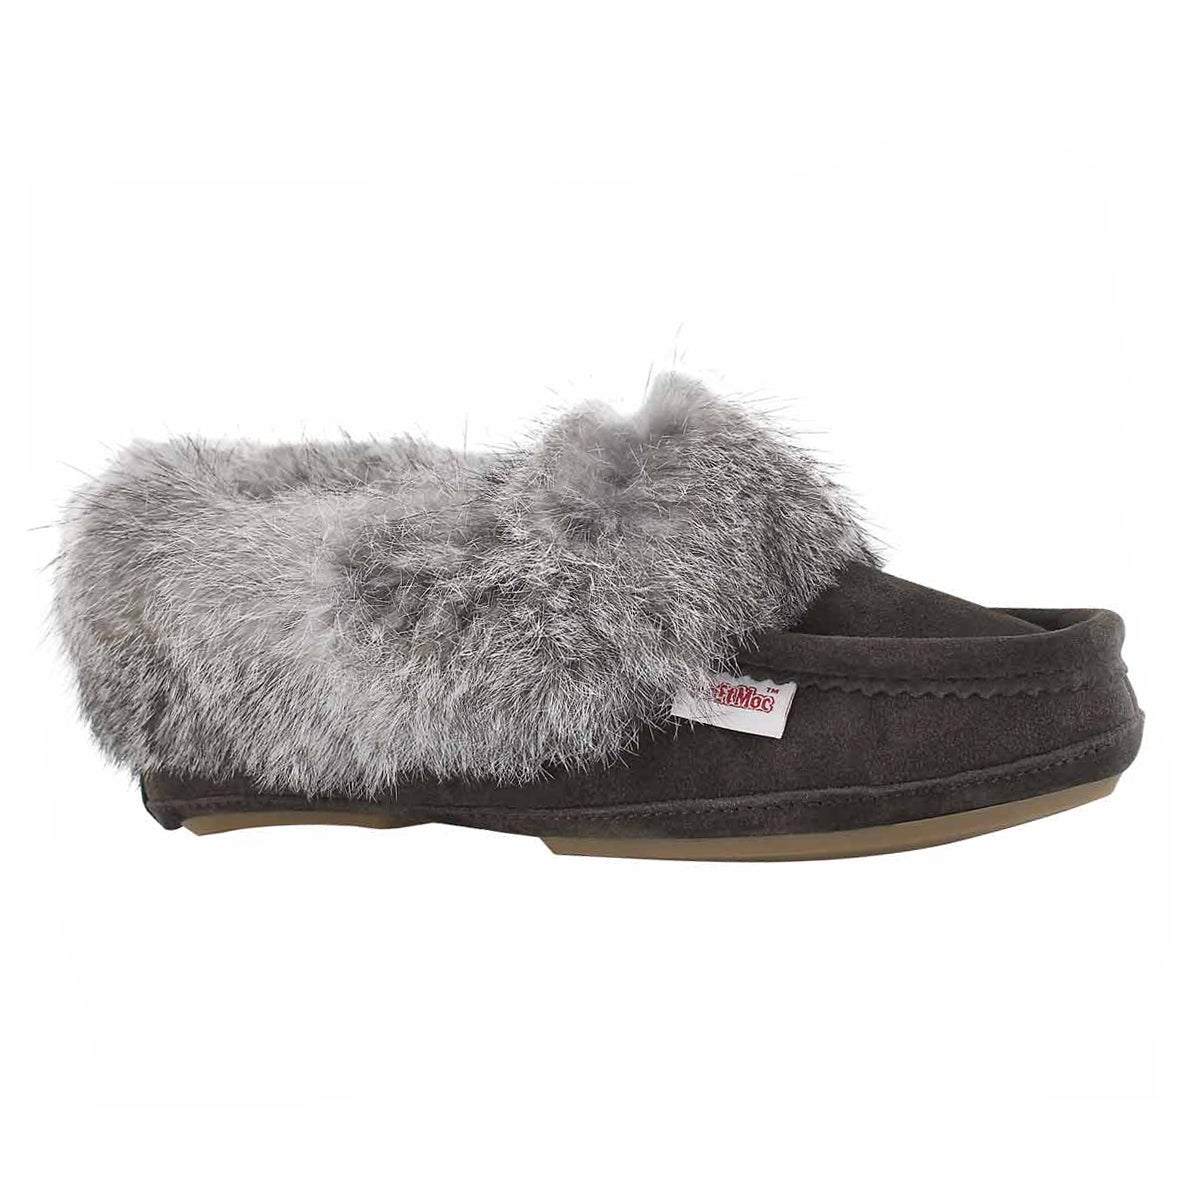 Lds Carrot 3 gry rabbit fur moccasin